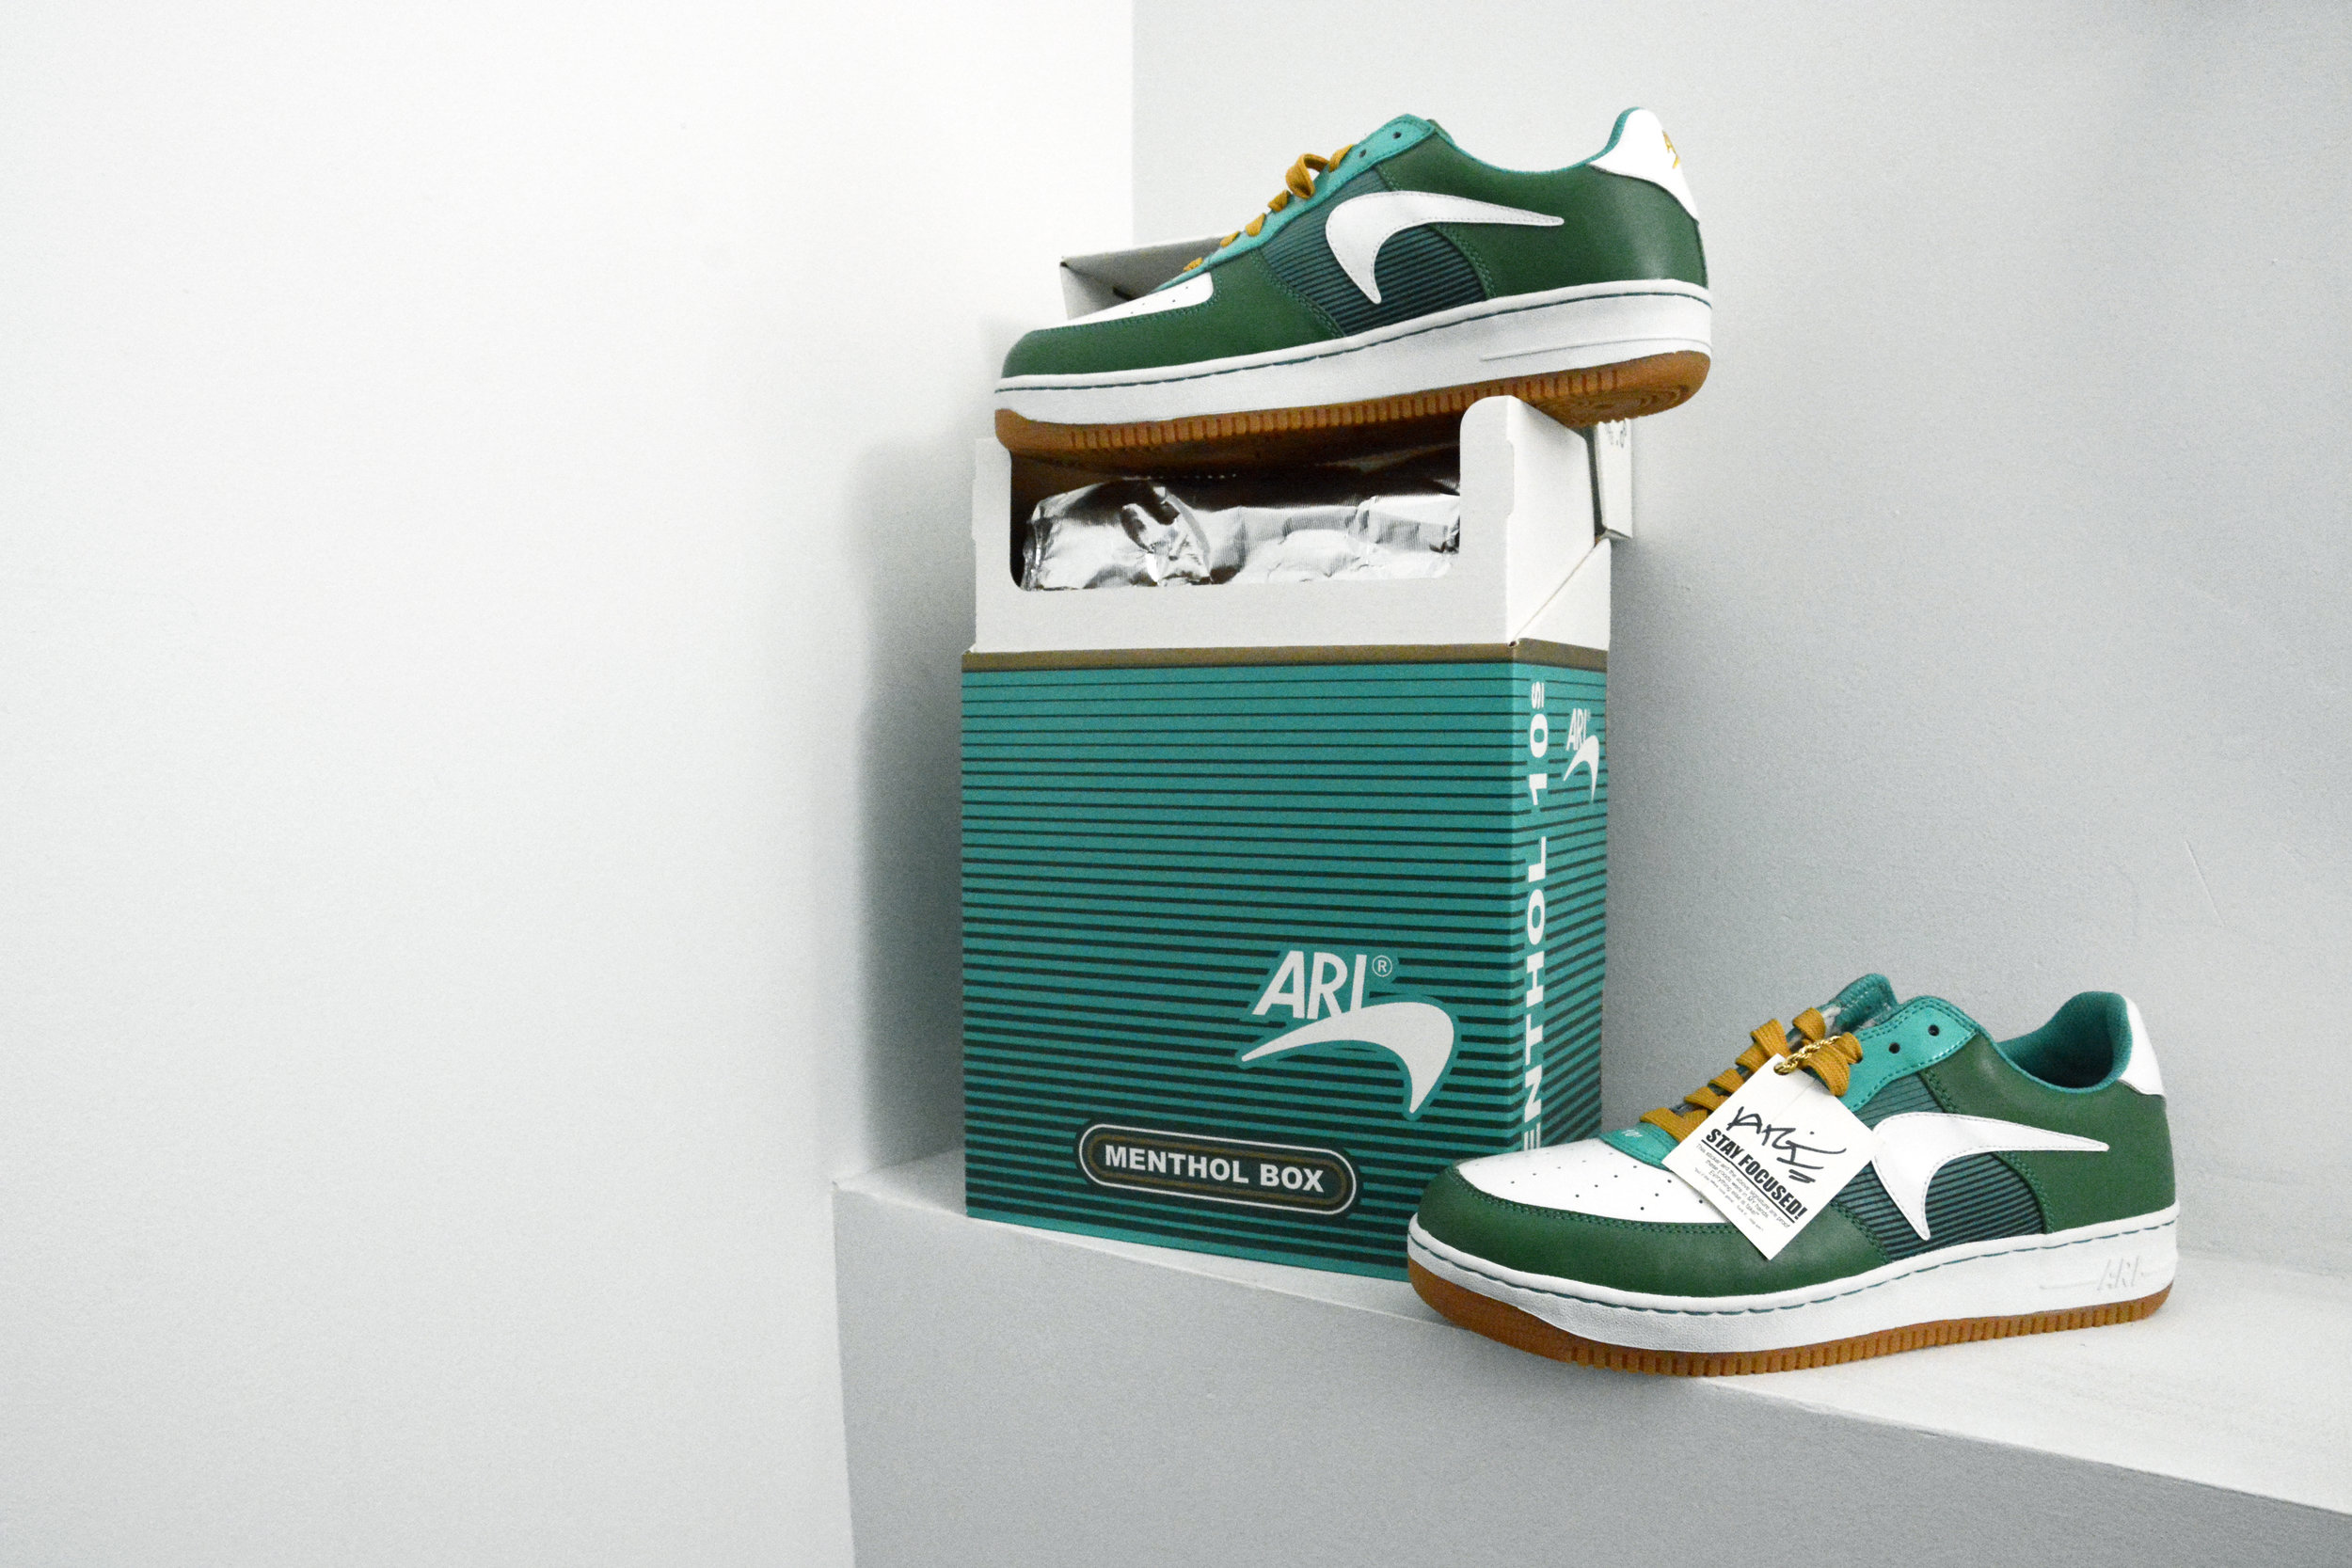 Menthol 10s Sneakers and Box , Ari Saal Forman, 2006. Courtesy of Private Collection. Photographed by Aanchal Bakshi for NYU Costume Studies, 2018. Image © Aanchal Bakshi.